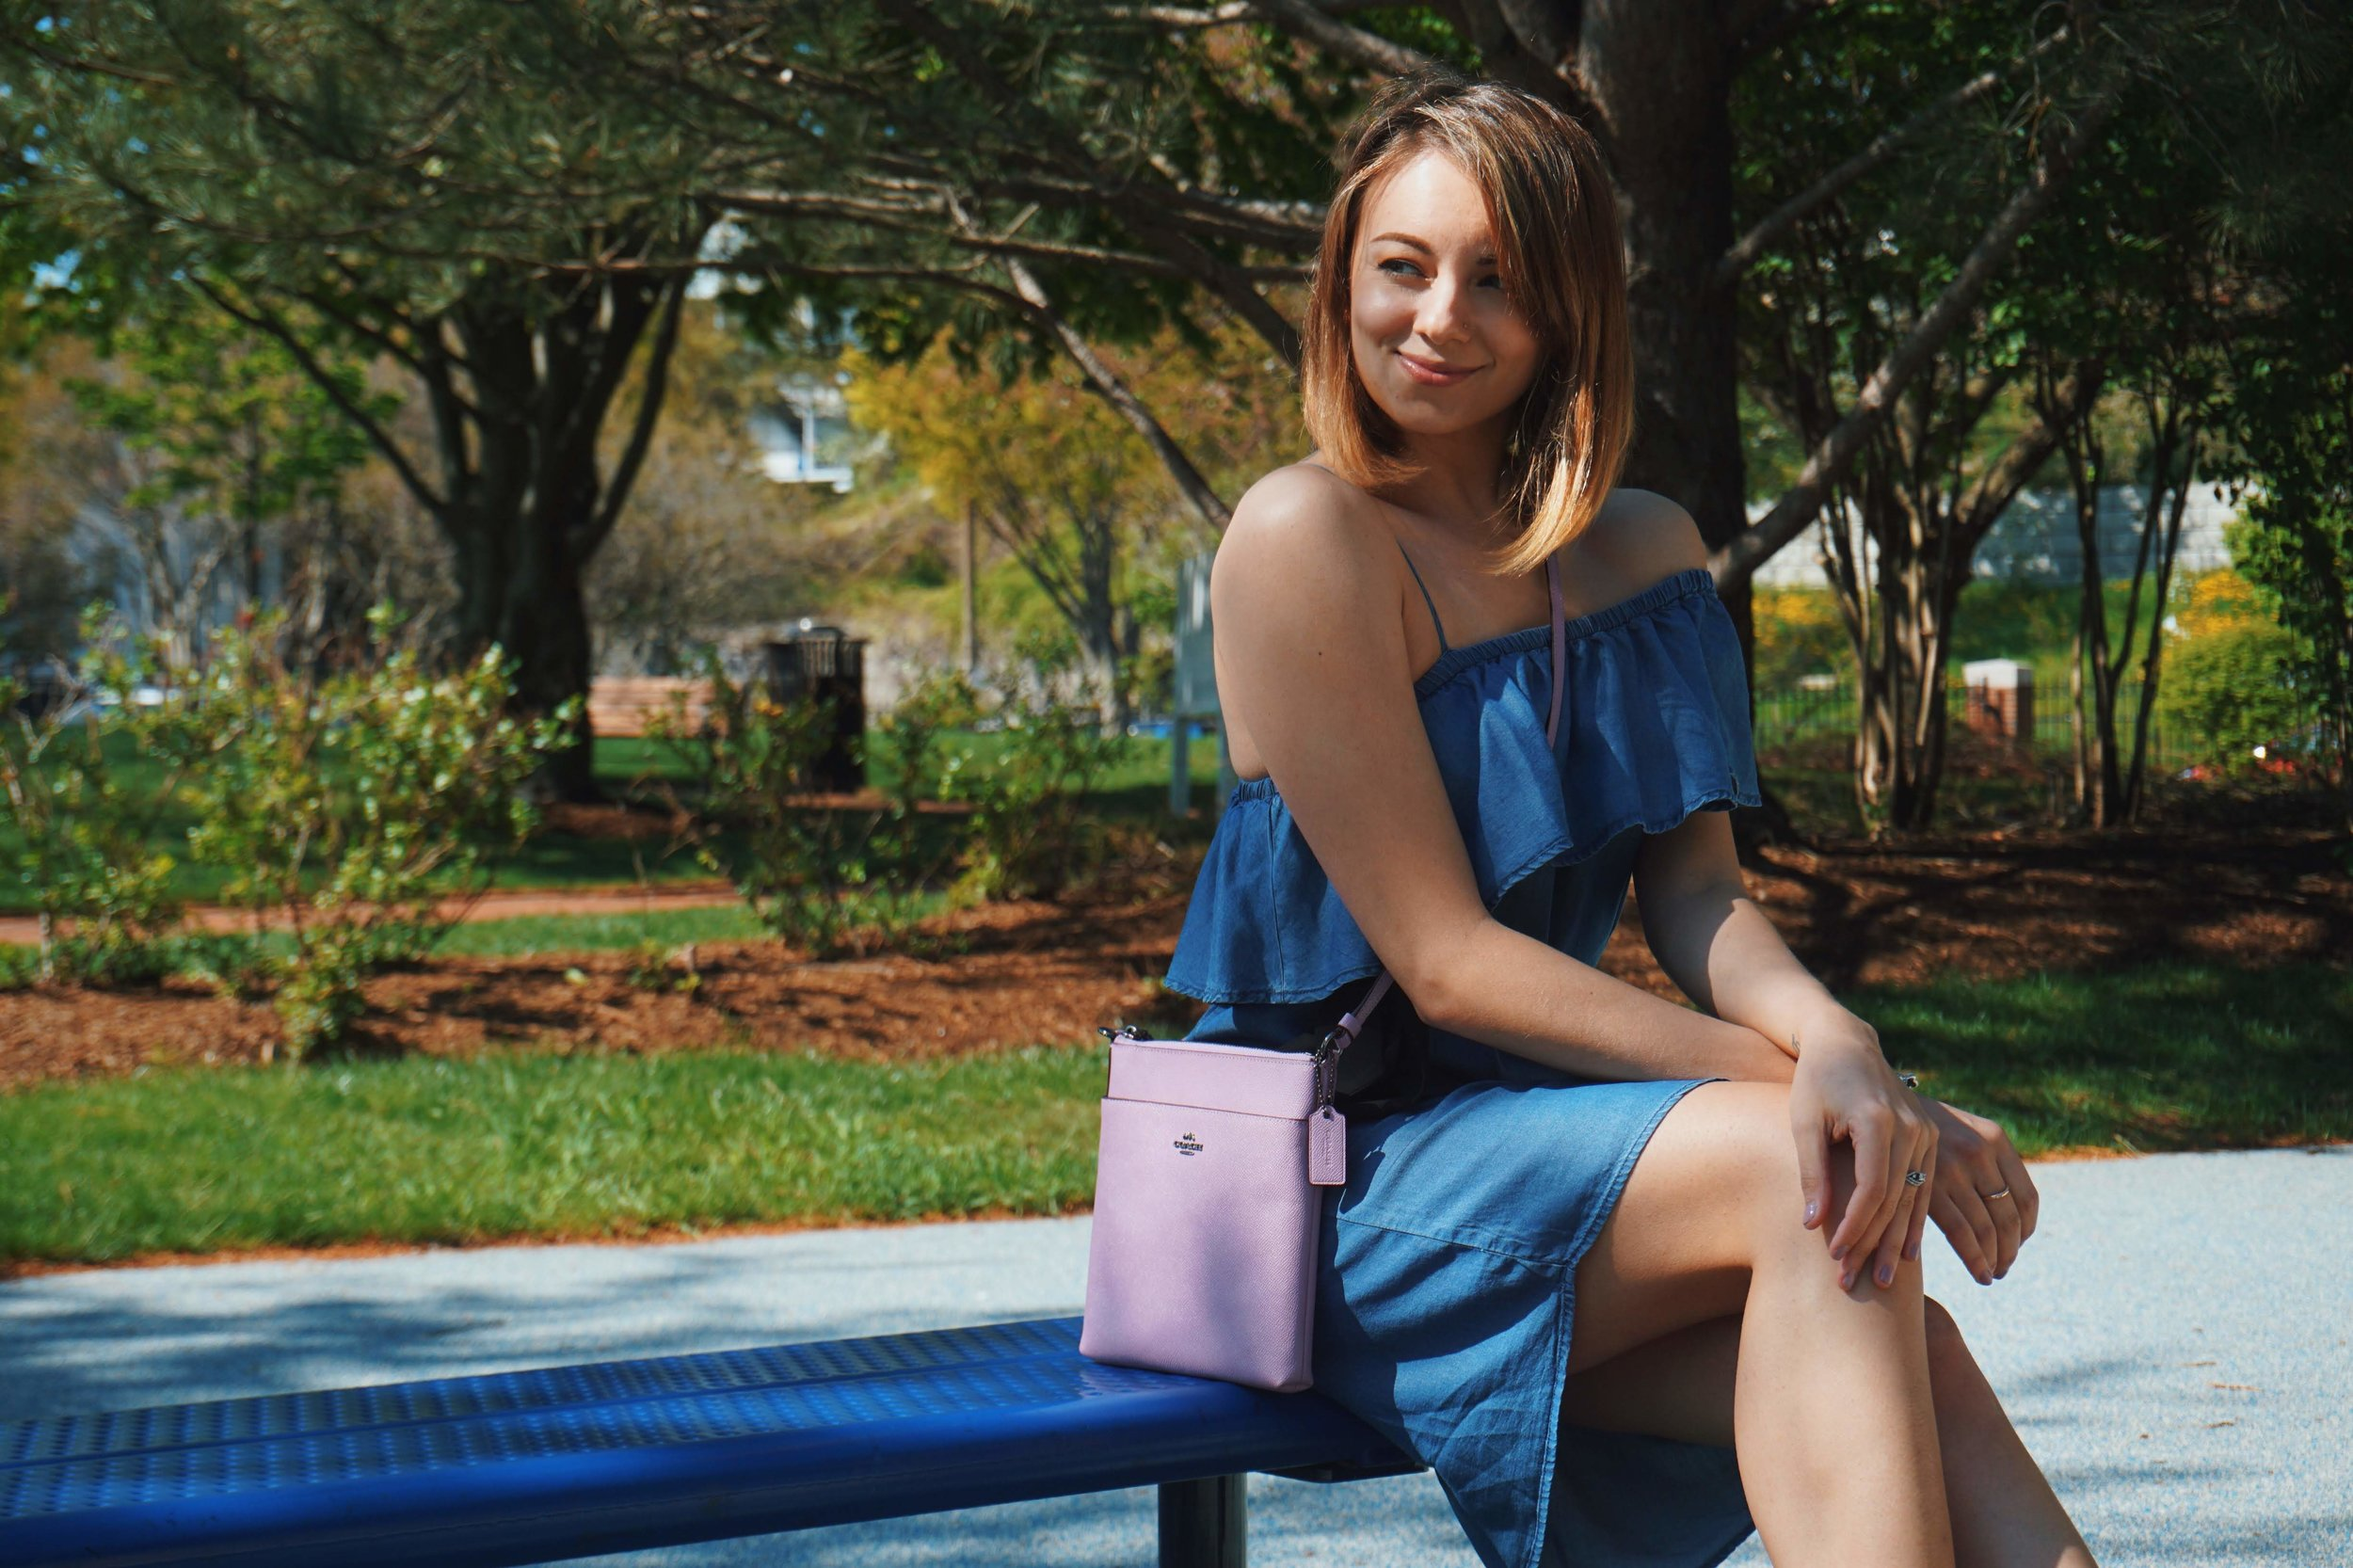 A blogger sitting on a bench in a cute summer outfit: denim dress, lilac purse.